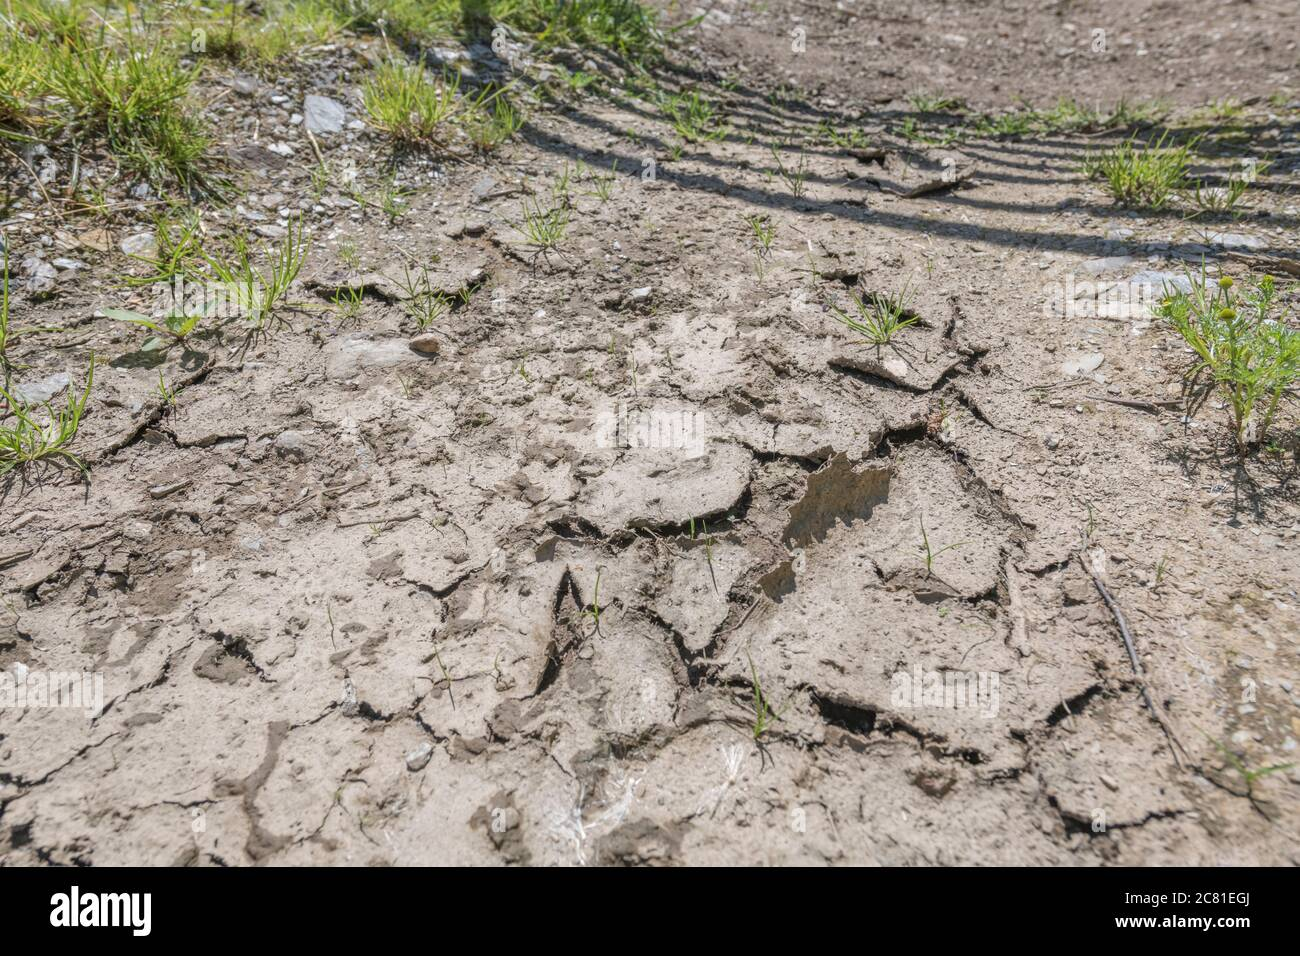 Bone dry cracked mud by the gated entrance (shadow) to a field in a hot summer heatwave spell in UK. For water shortage, parched soil, drought in UK. Stock Photo